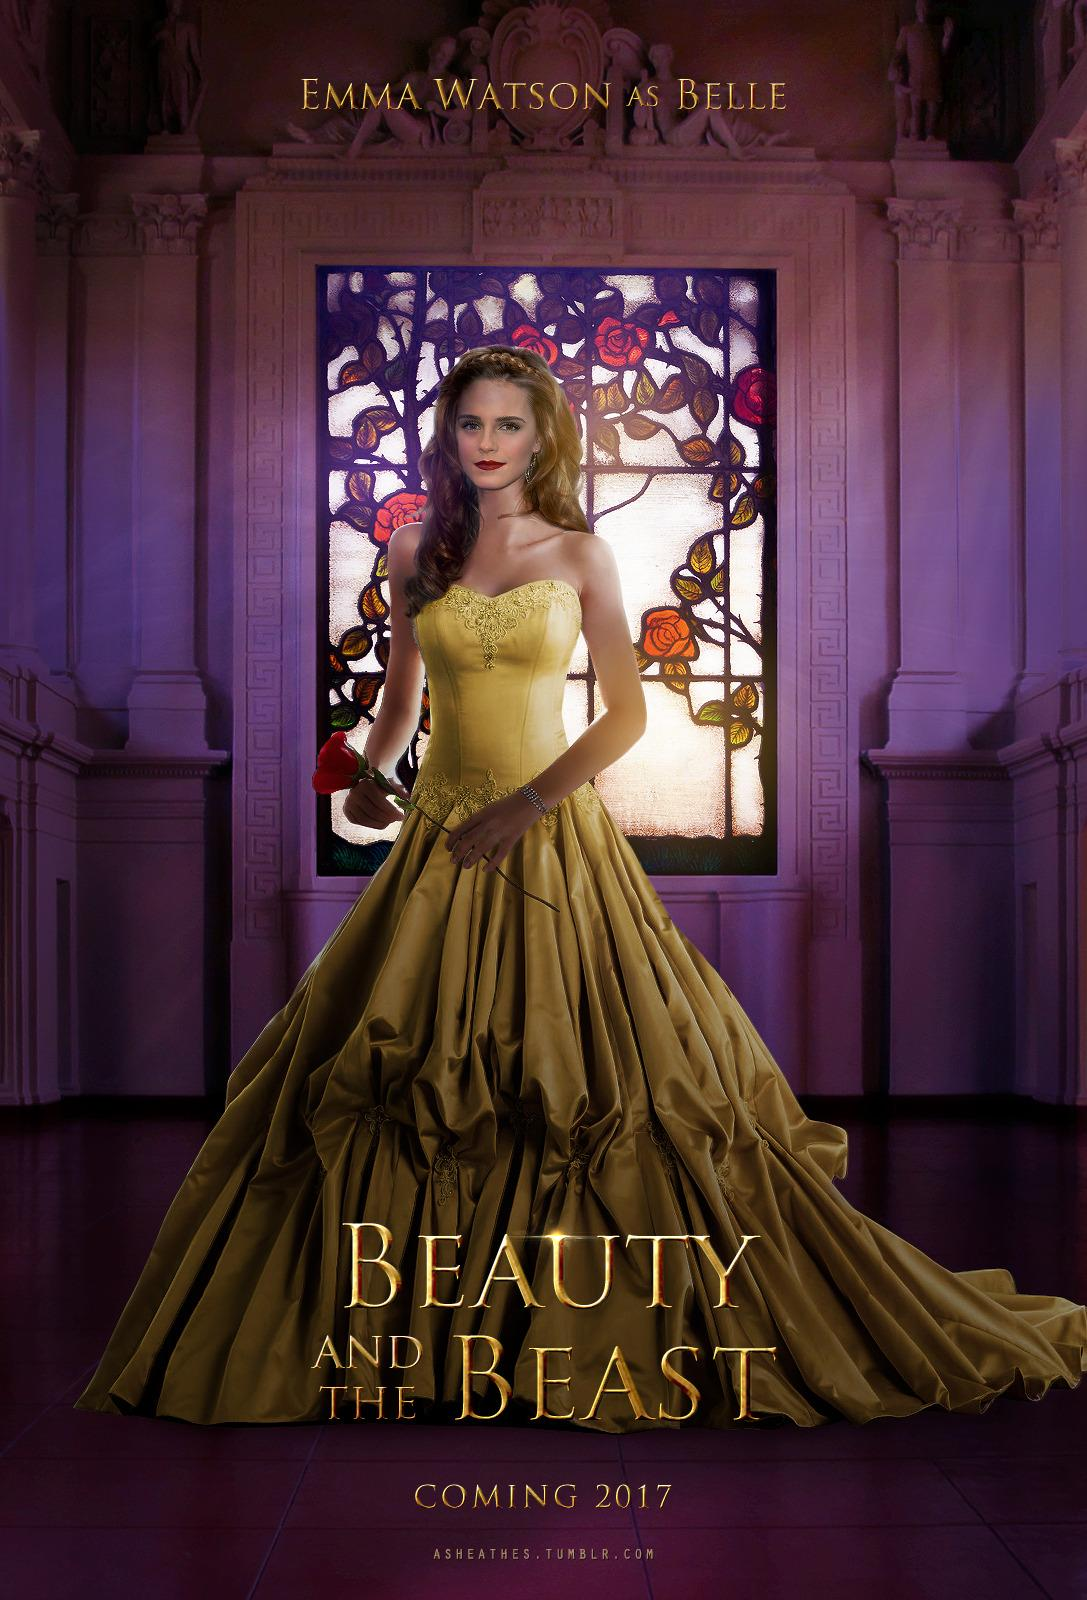 Beauty And The Beast Movie Wallpaper Beast In Beauty And The Beast Emma Watson 1087x1600 Wallpaper Teahub Io